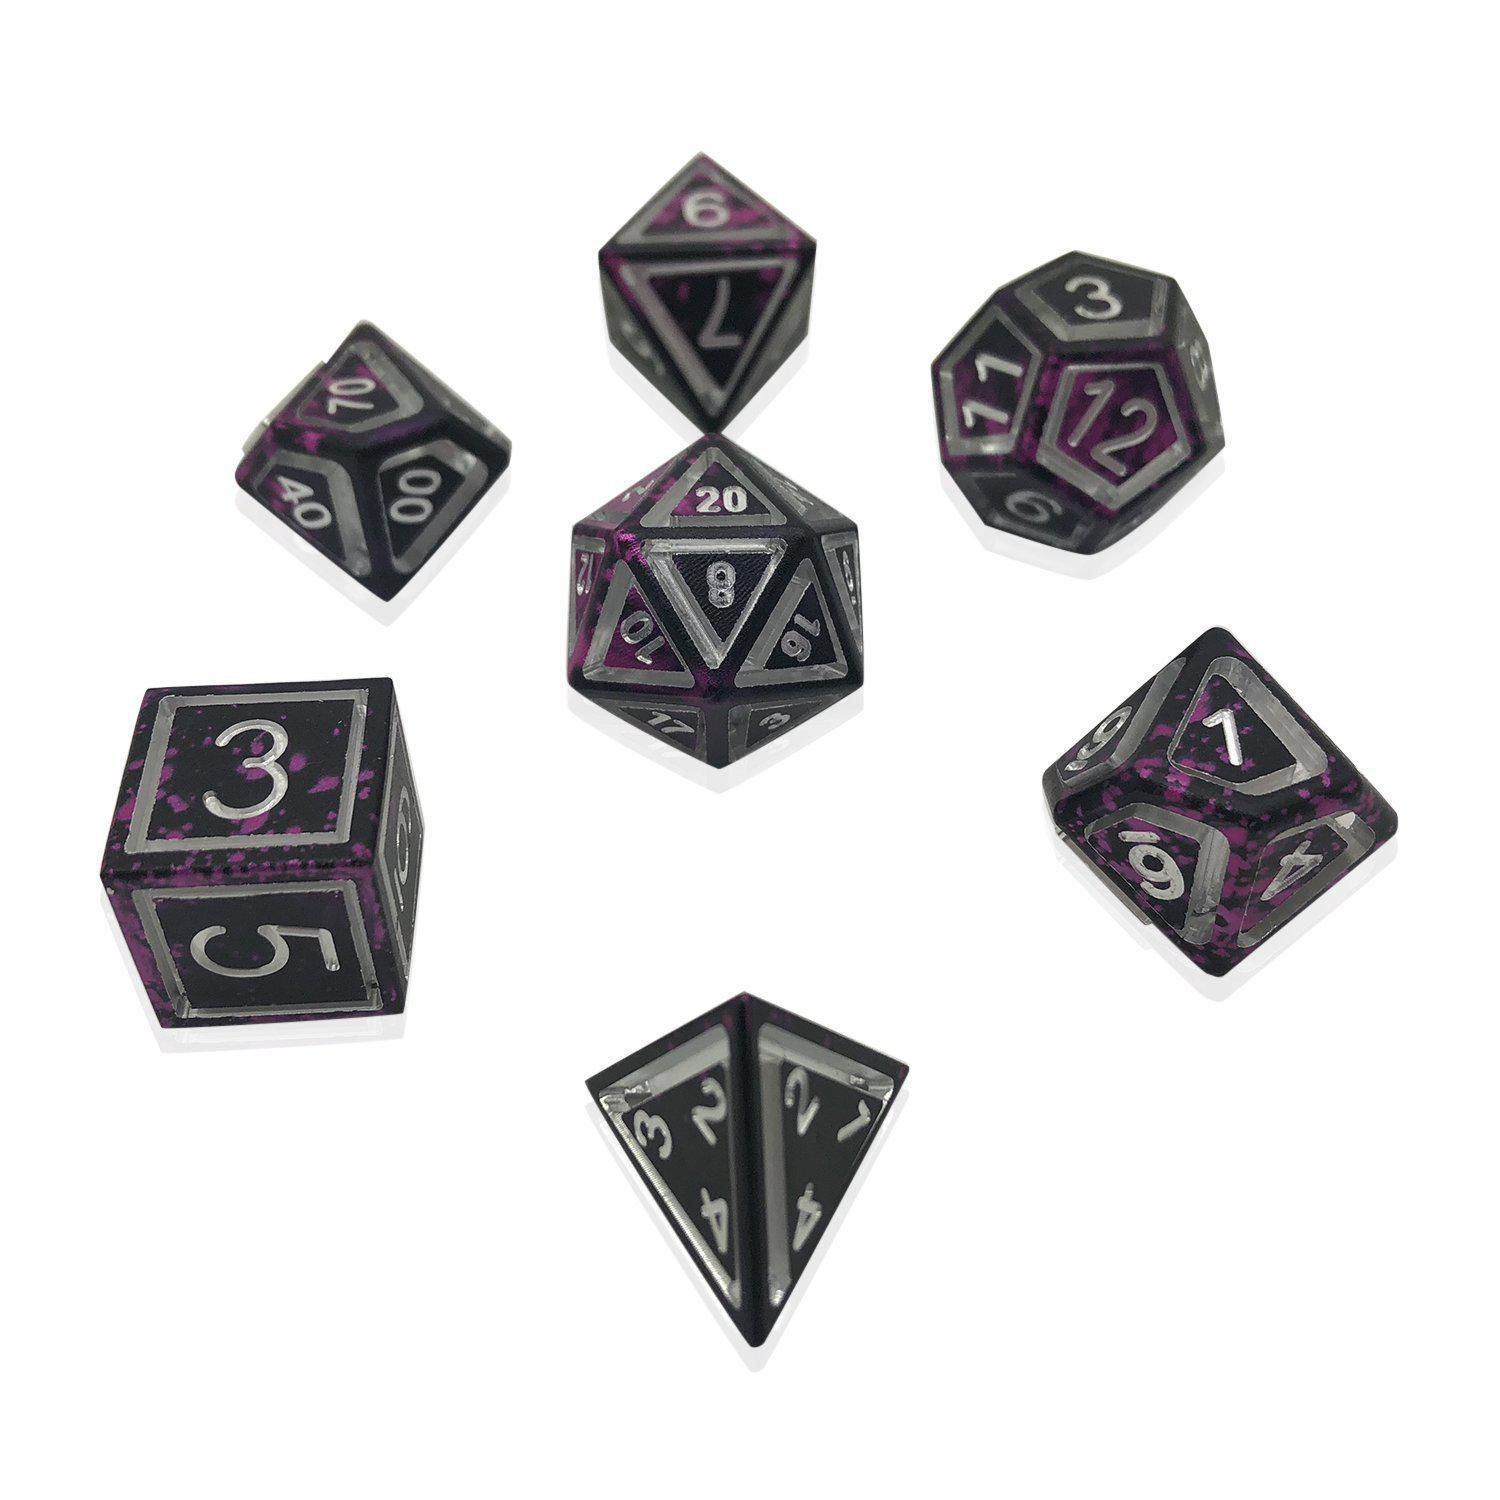 Wondrous Nimbus Precision Cnc Aluminum Dice Set Eldritch In 2020 Cnc Gaming Accessories Norse For my review of norse foundry's impressive aluminum precision dice series, i had to compare noise levels between a traditional wyrmwood case and the. pinterest